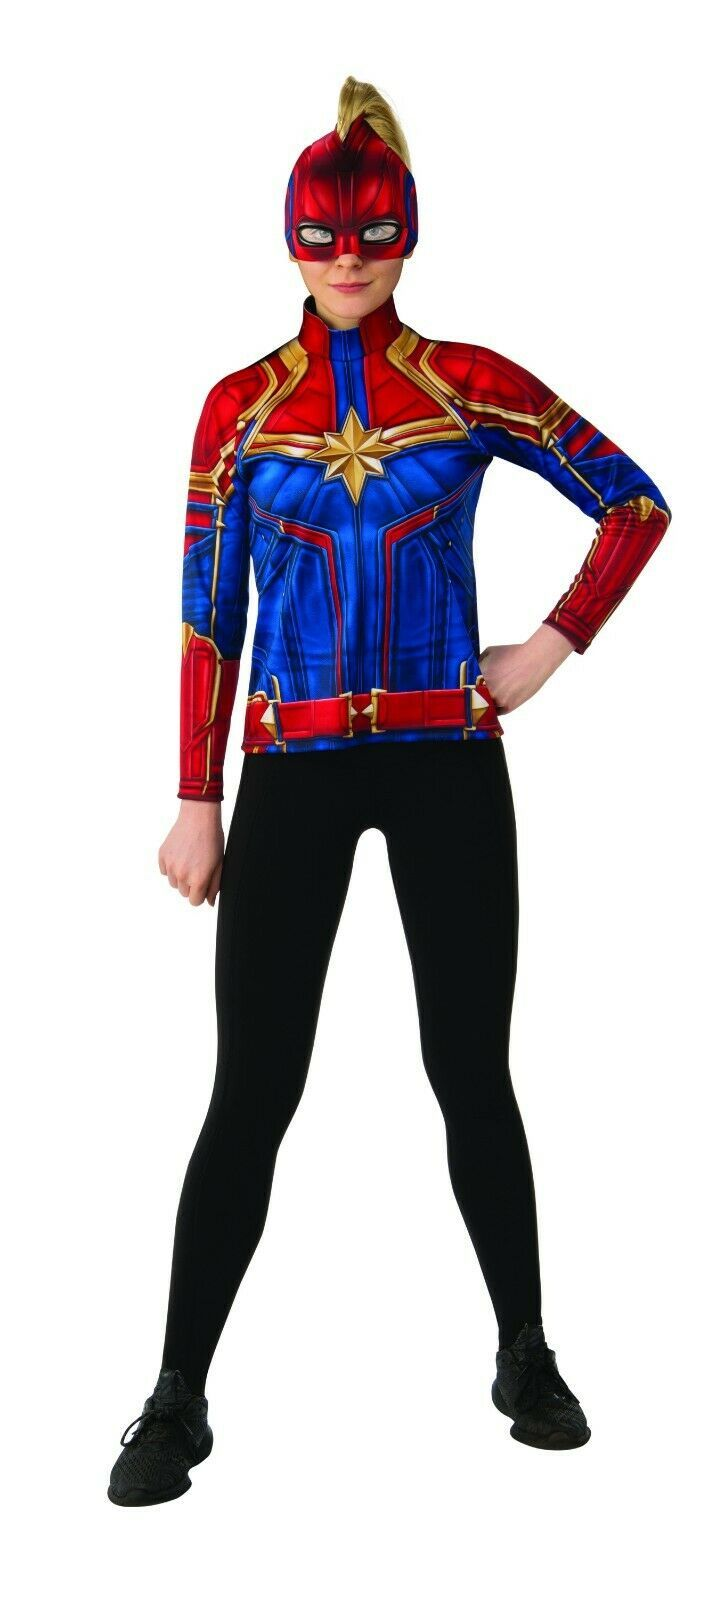 Primary image for Rubies Capitaine Marvel Super Héros Costume Film Adulte Femmes Halloween 700603